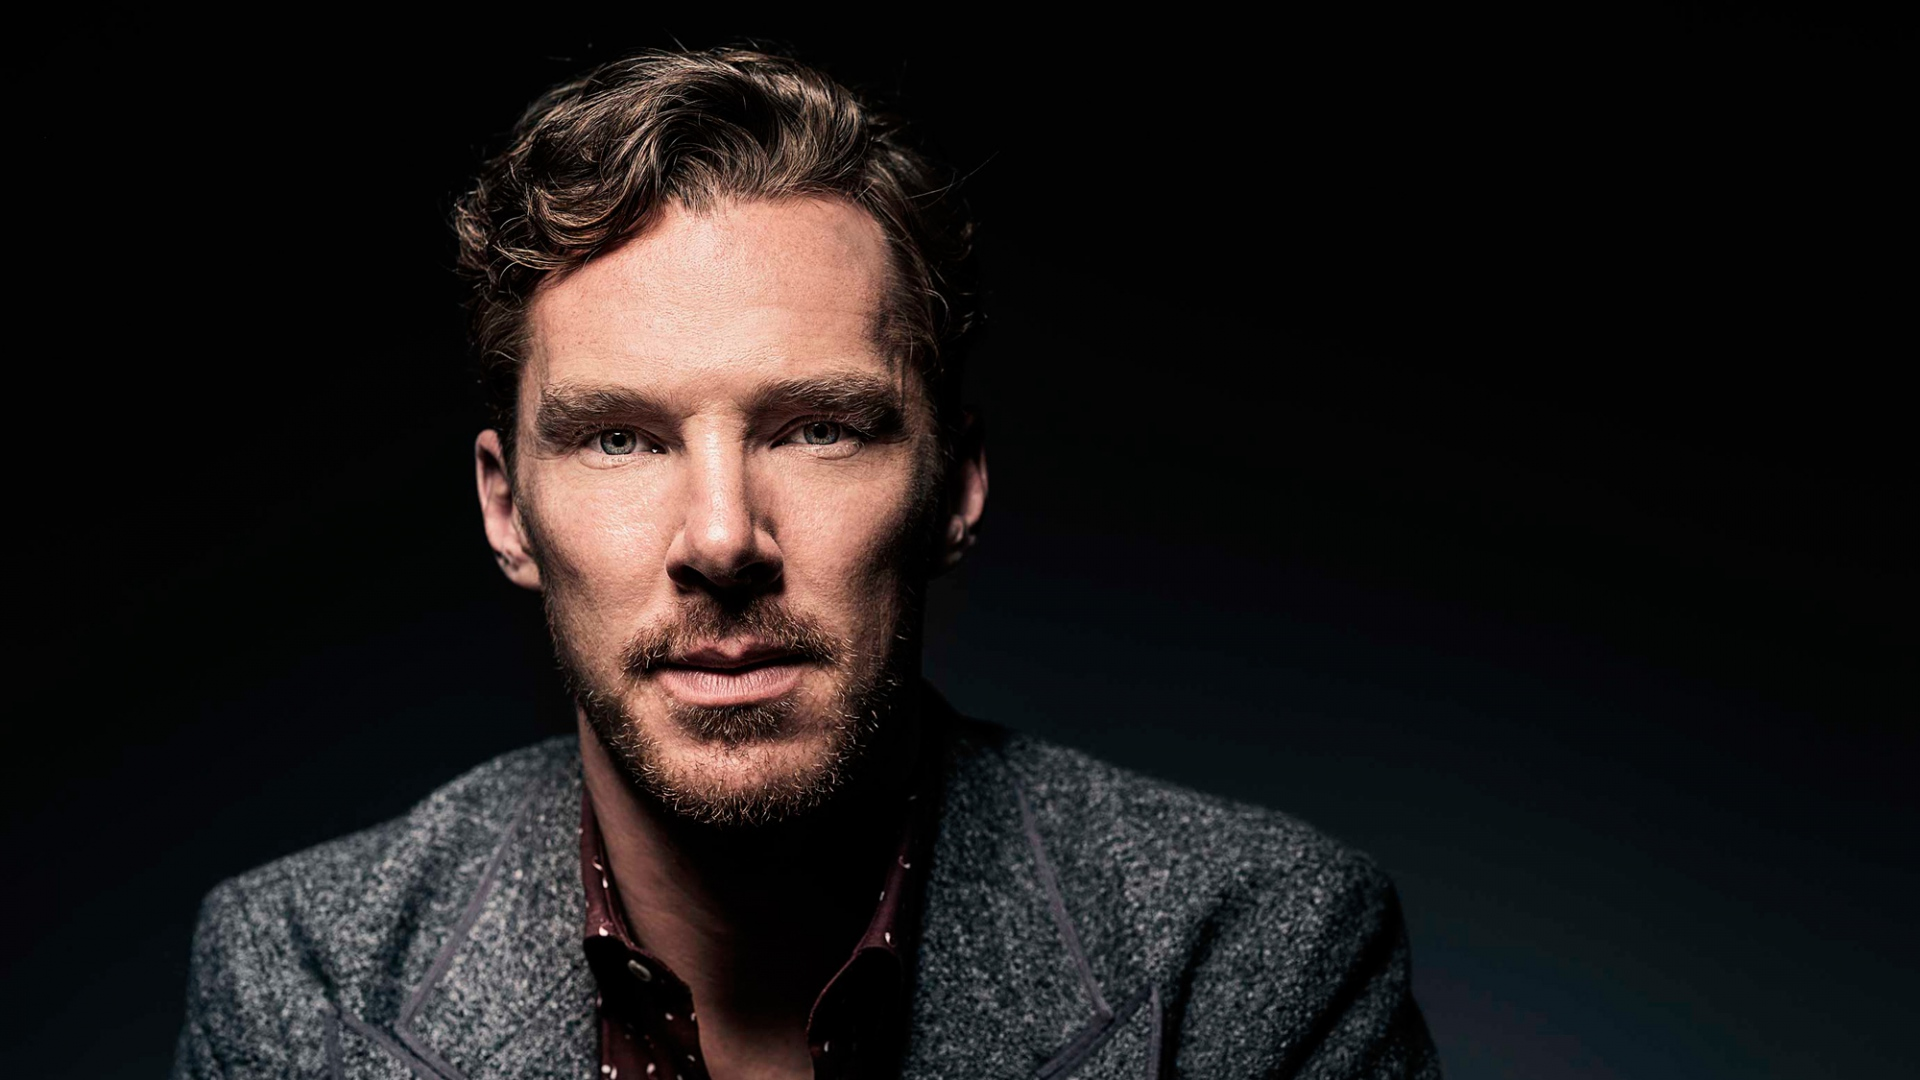 Benedict Cumberbatch Wallpapers High Resolution and ... Benedict Cumberbatch